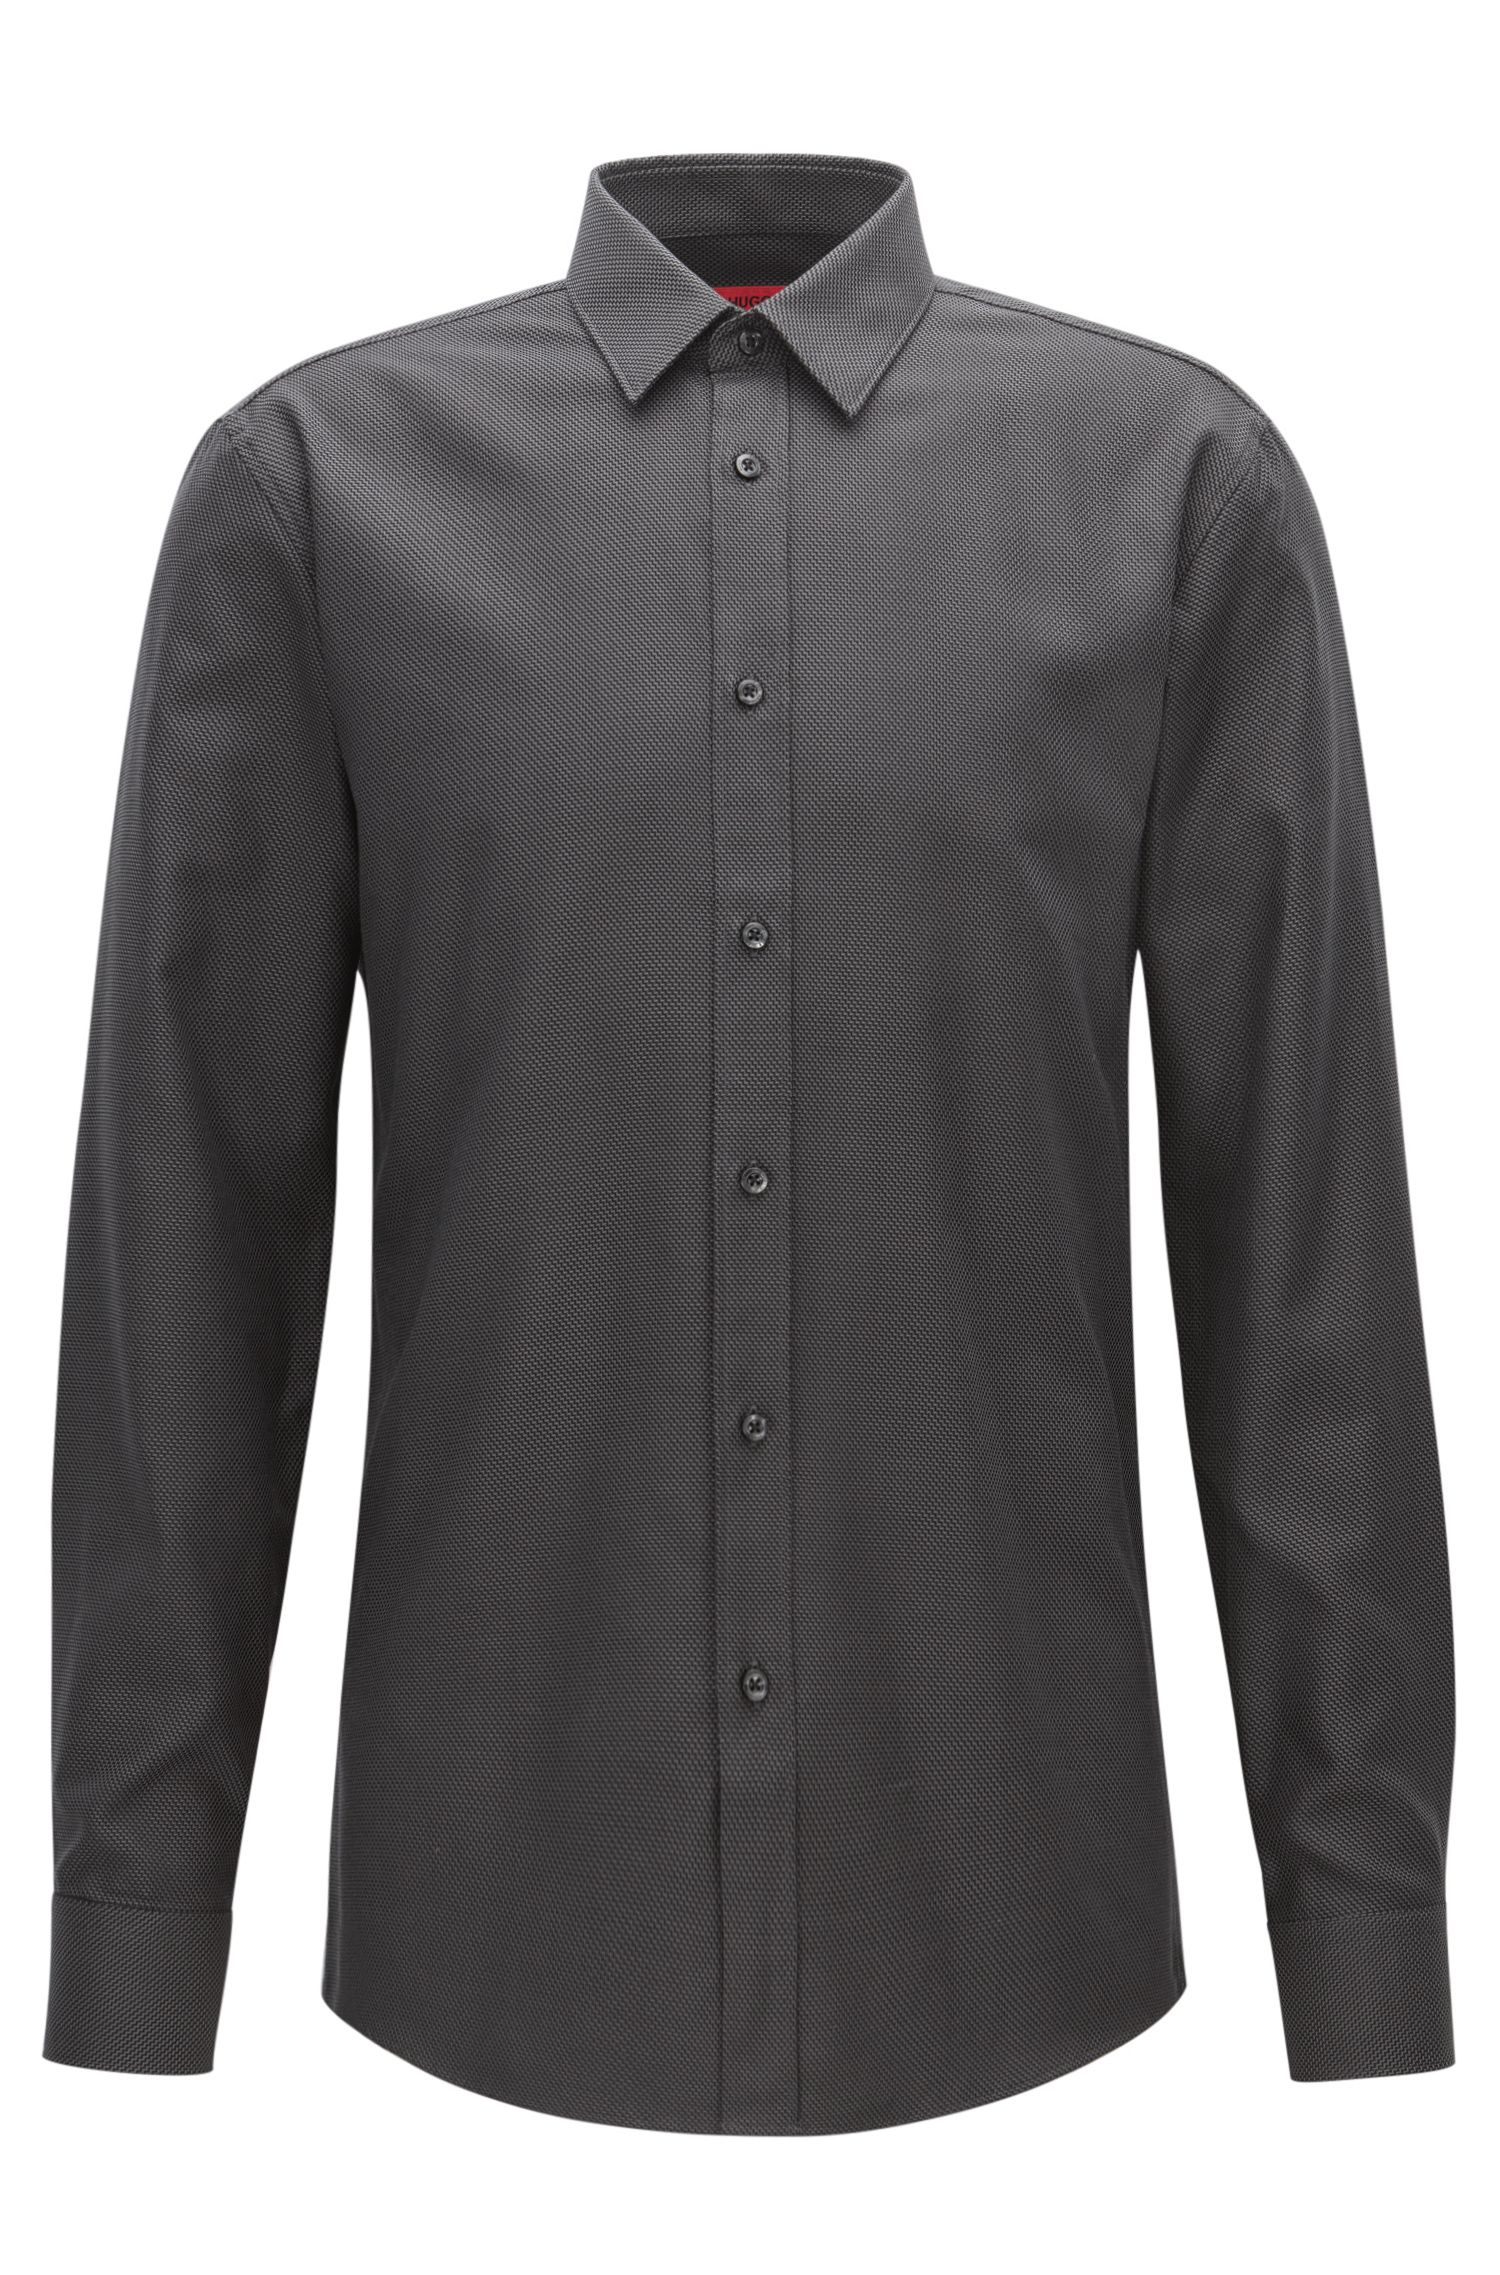 'Elisha' | Extra Slim Fit, Zig Zag Cotton Button Down Shirt